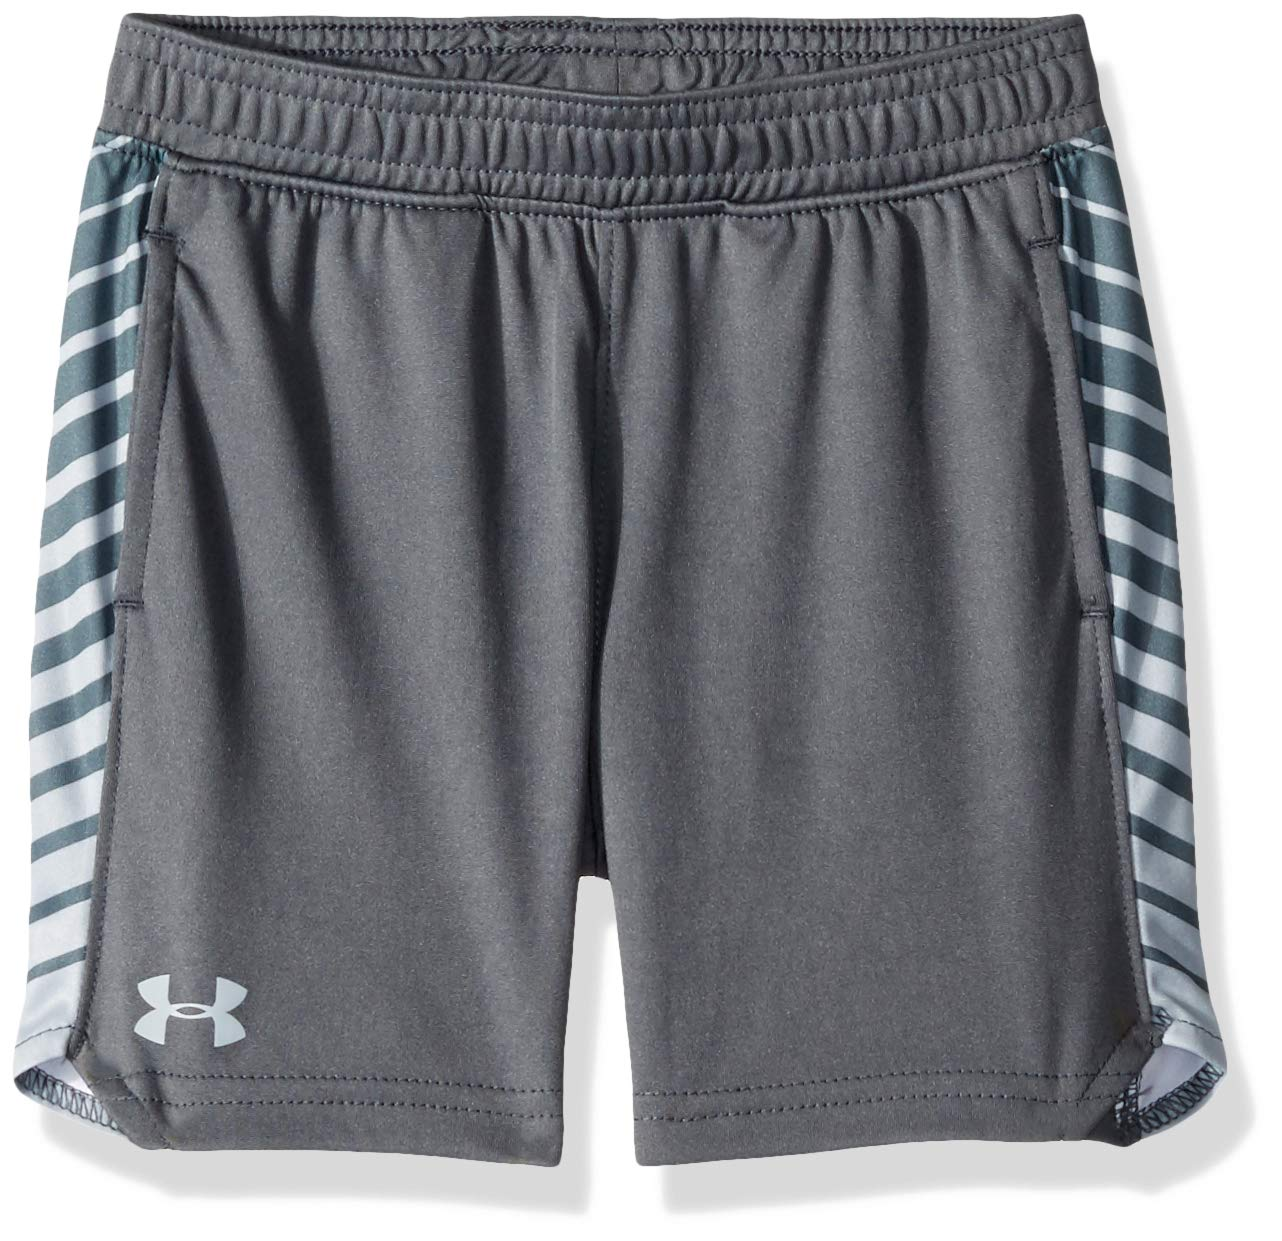 Under Armour Boys' Little Select Short, Dark Gray-S192, 6